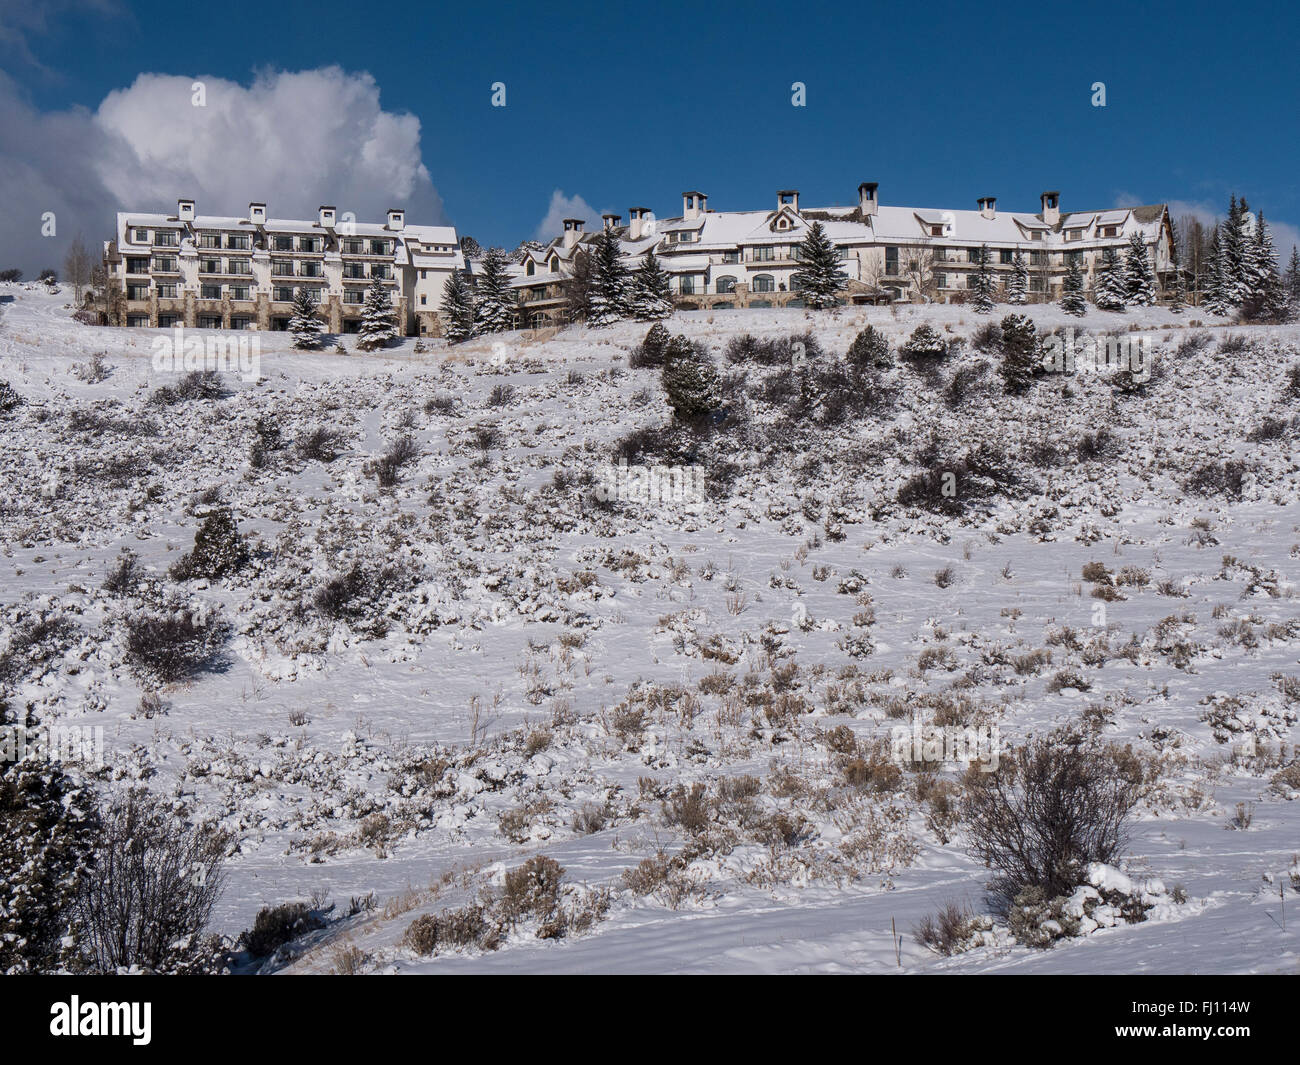 Winter, Lodge and Spa at Cordillera, Edwards, Colorado. - Stock Image